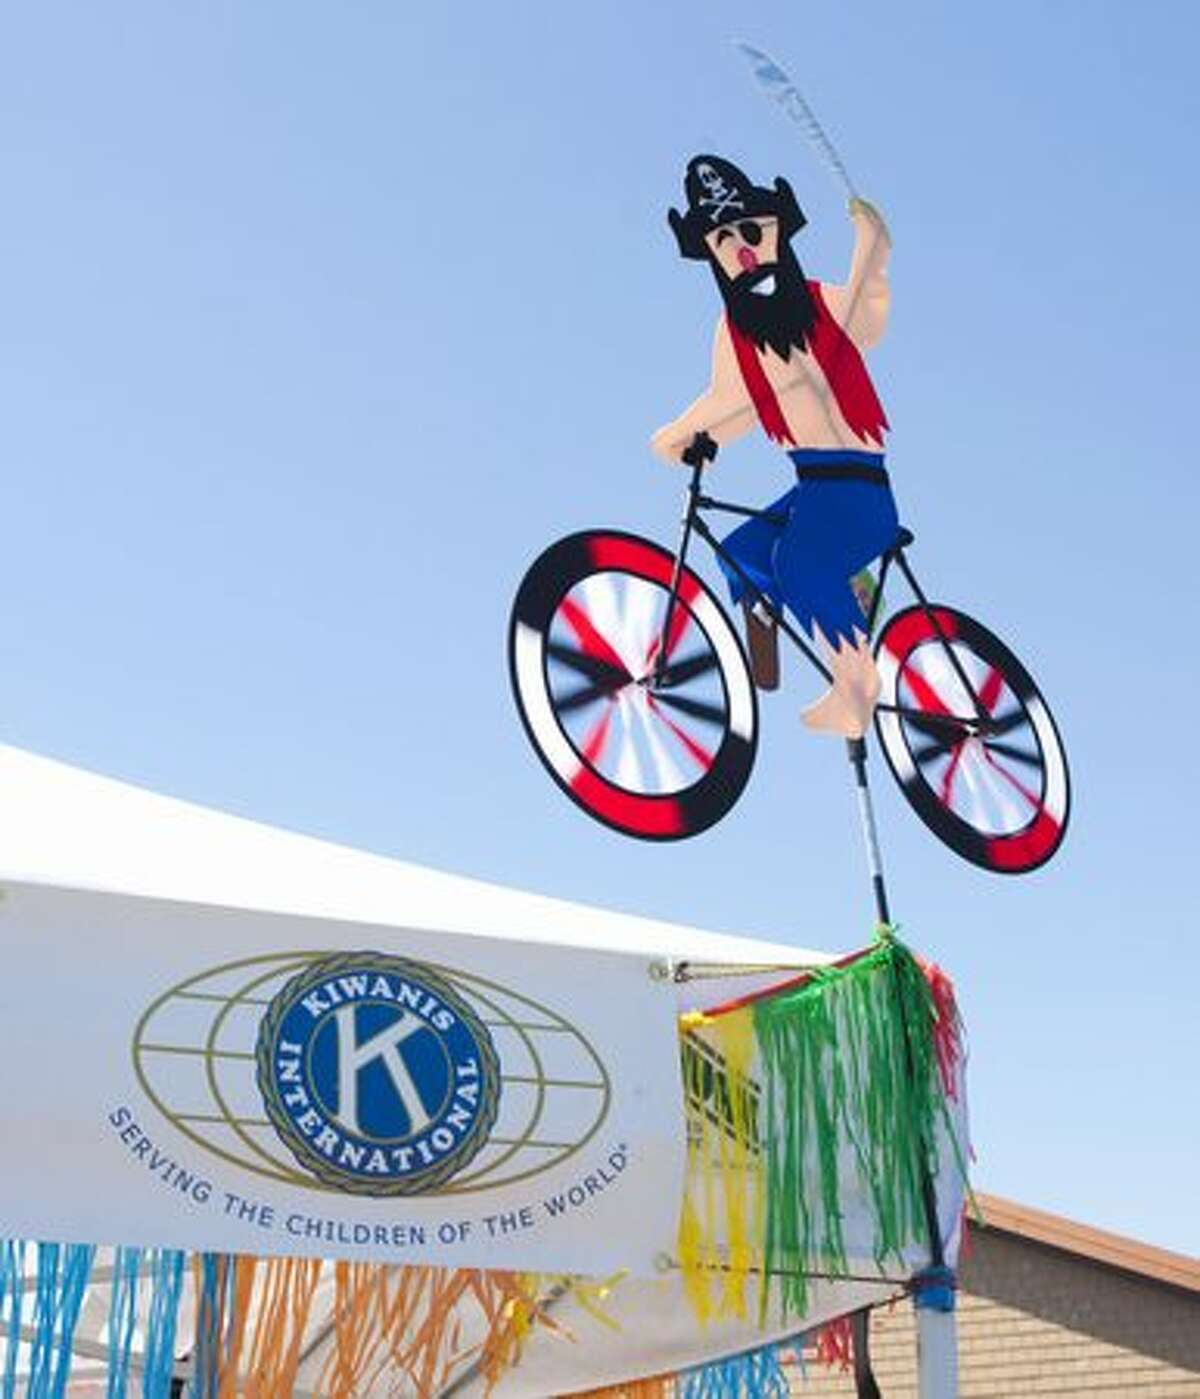 A windmill pirate cycles above the Kiwanis booth.